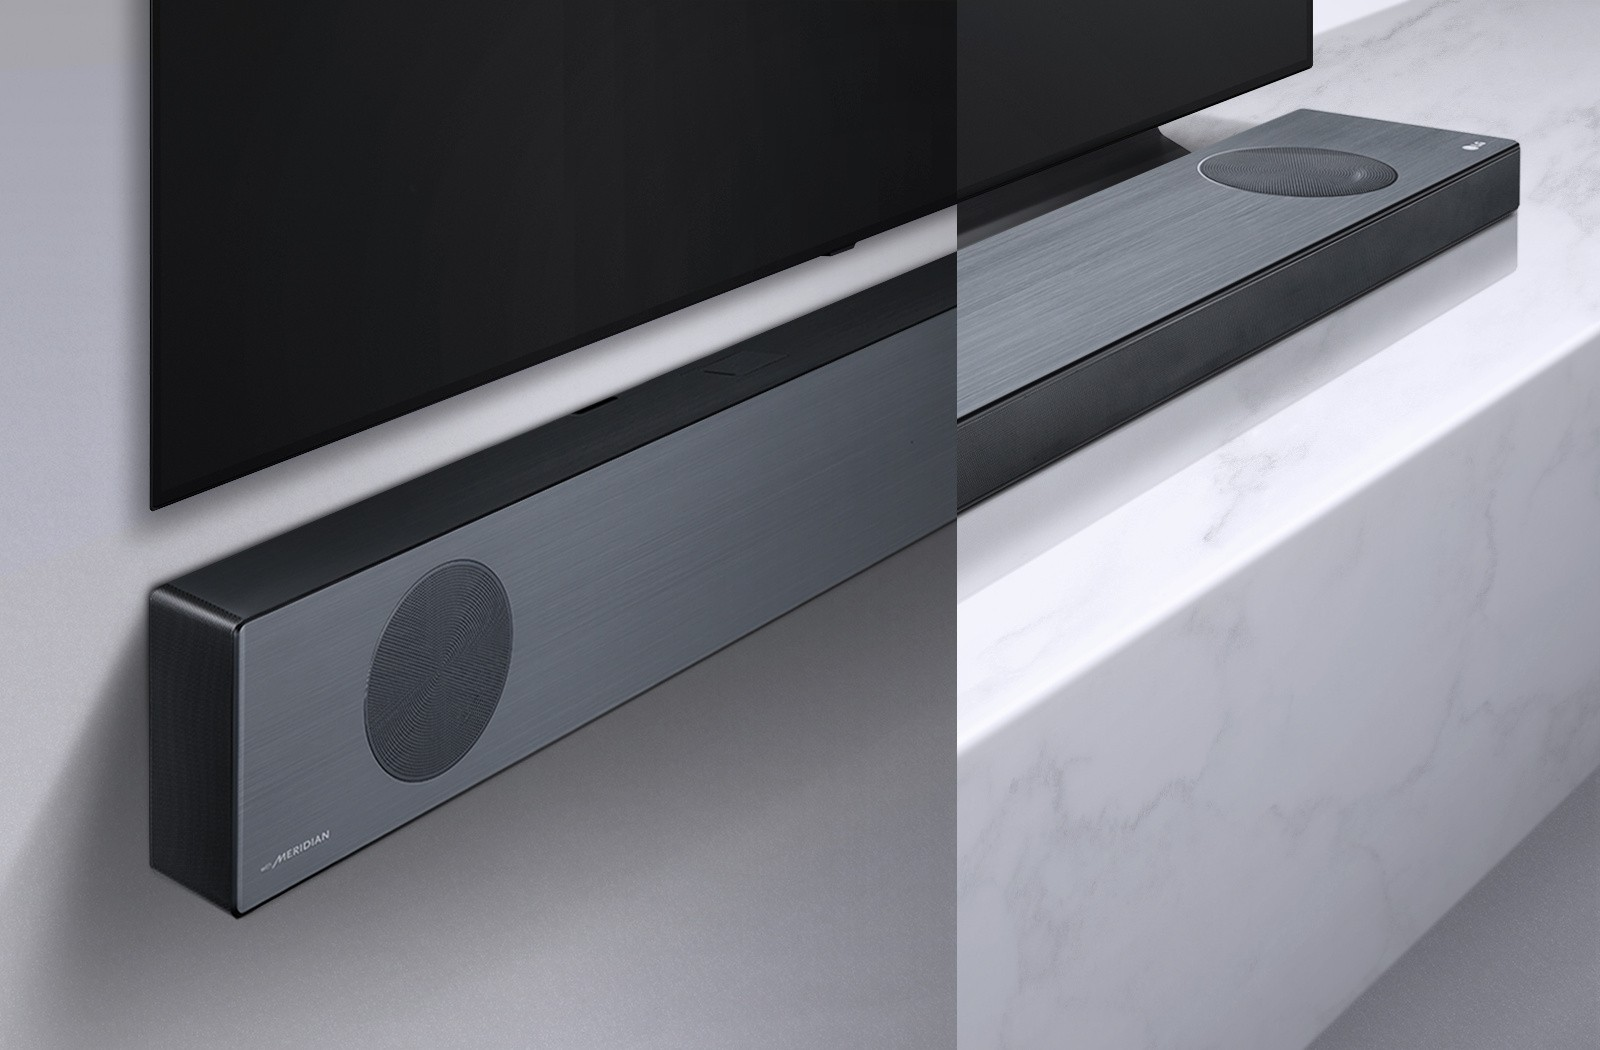 LG unveils high-end Soundbars ahead of CES 2019